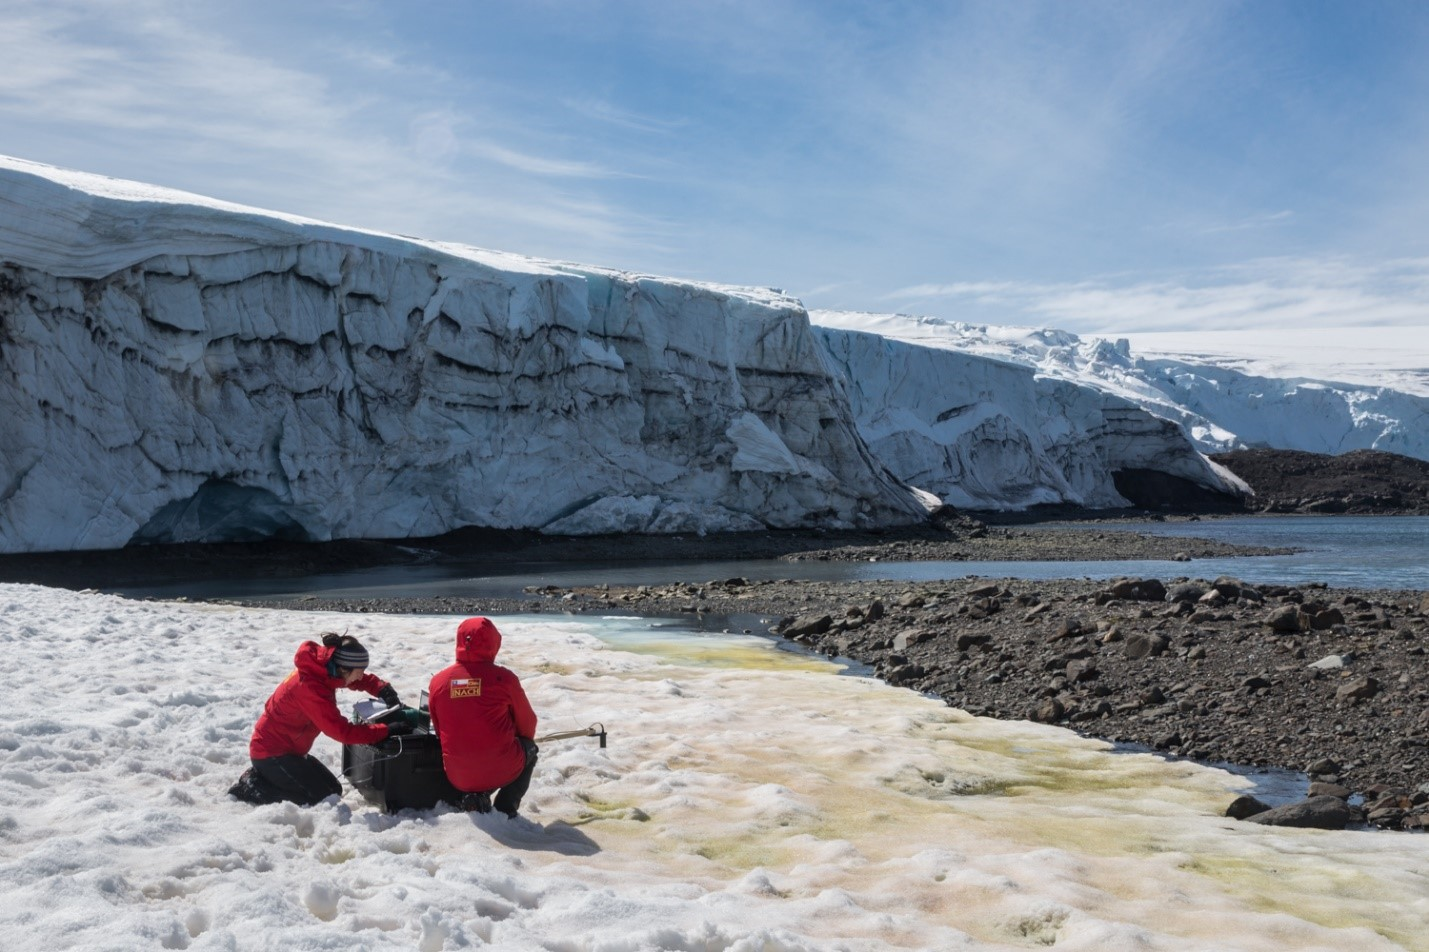 Dr. Alia Khan and colleague Edgardo Sepulveda collect spectra albedo measurements in front of Collins Glacier on King George Island. Credit: Gonzalo Barrera